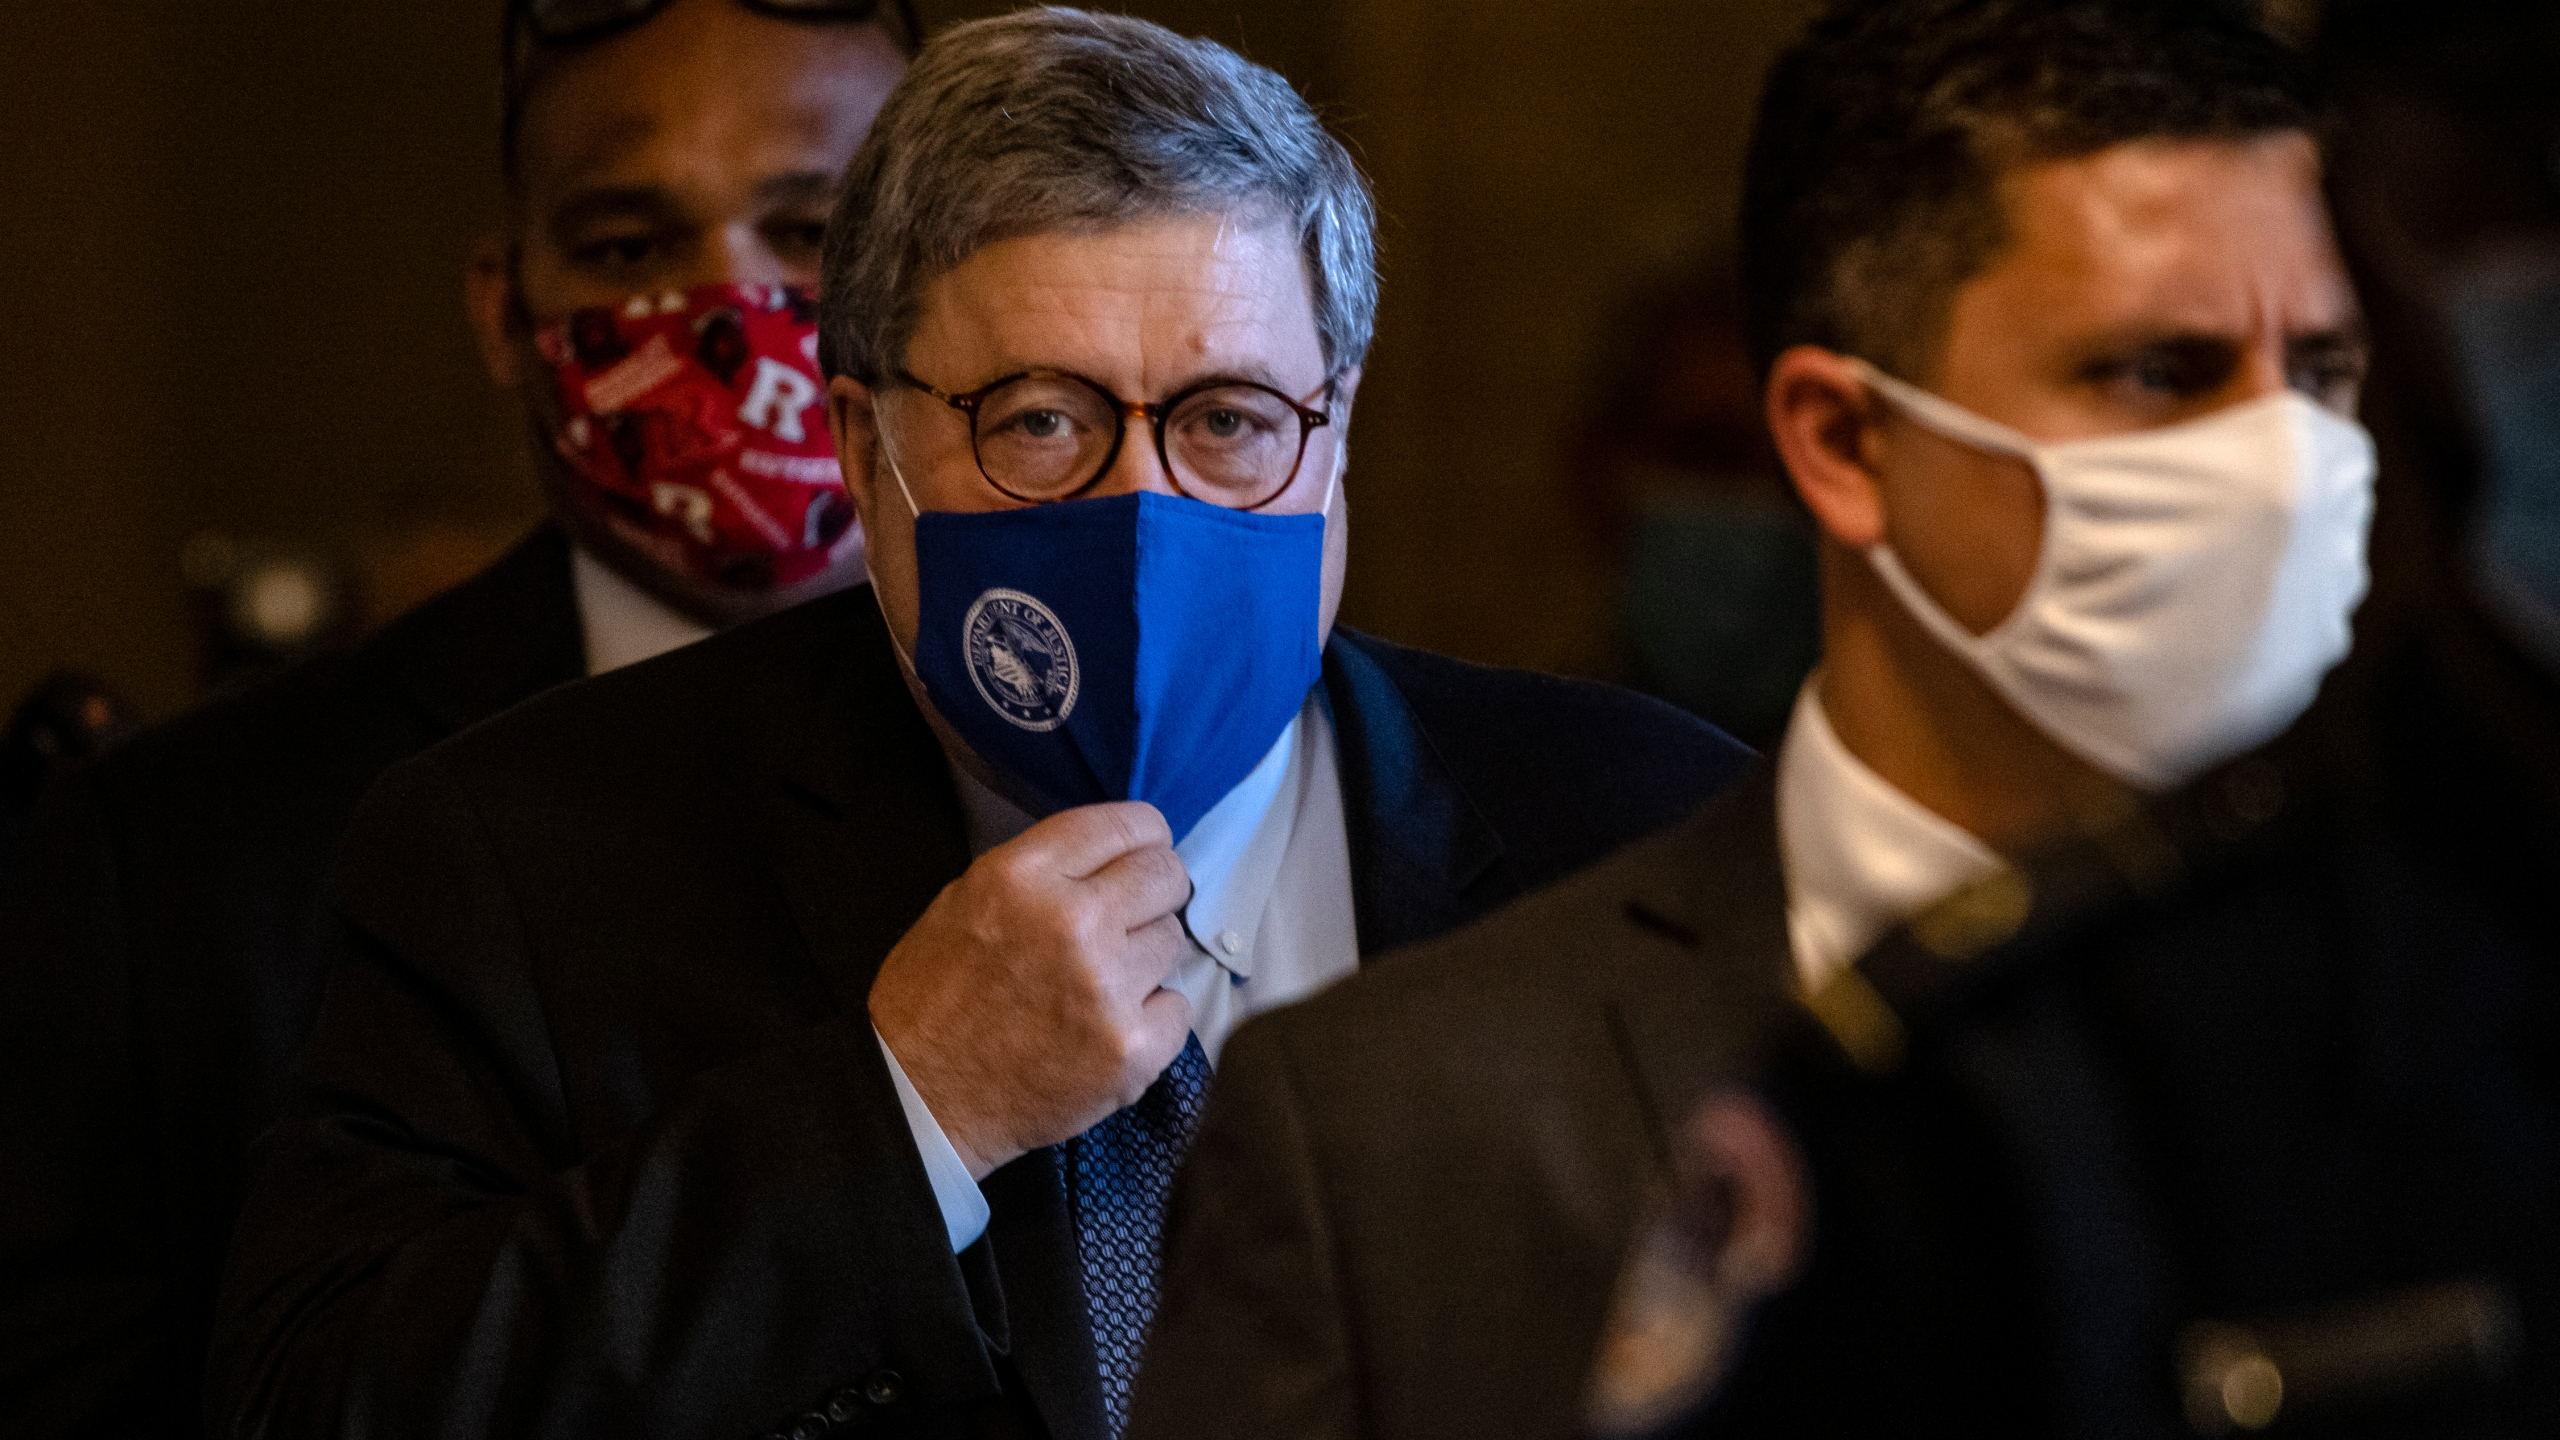 Attorney General Bill Barr leaves the U.S. Capitol after meeting with Senate Majority Leader Mitch McConnell in his office on Nov. 9, 2020. (Samuel Corum/Getty Images)